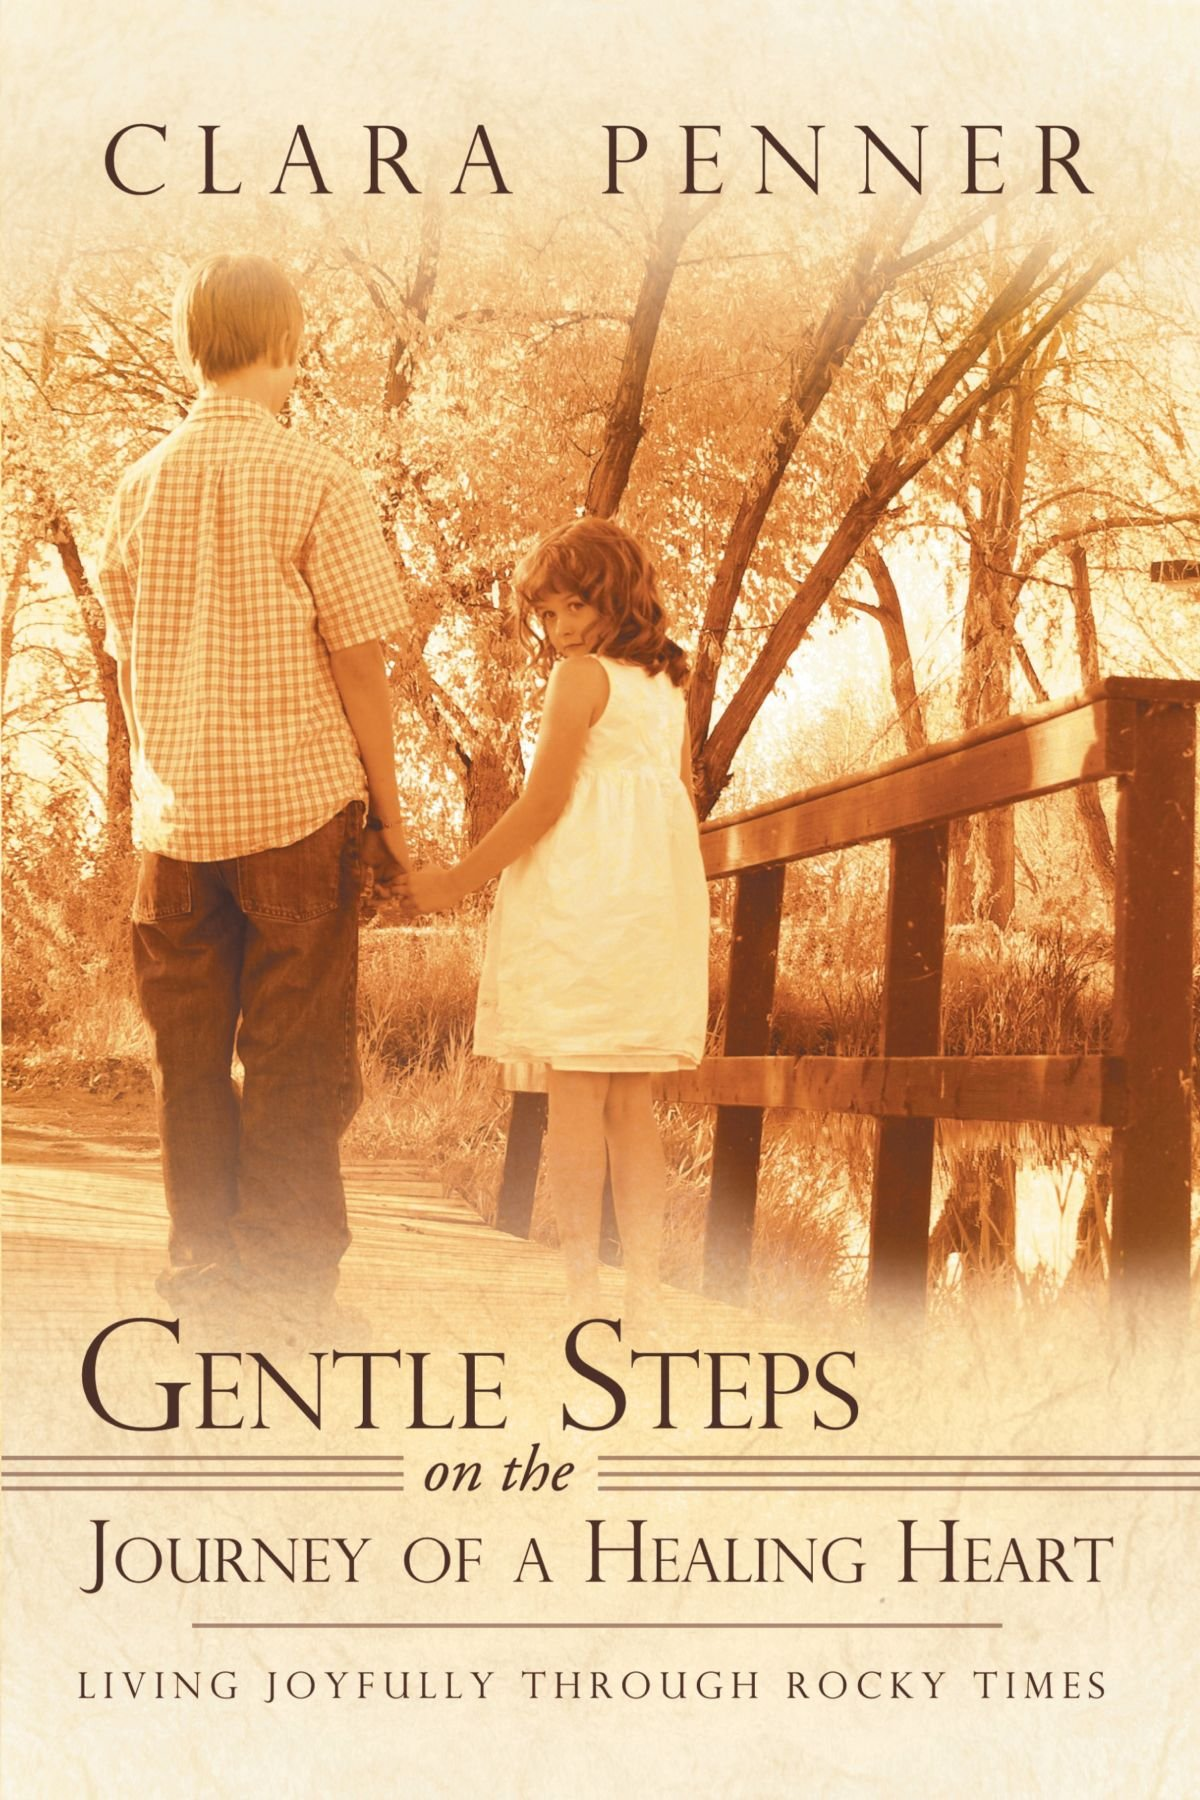 Gentle Steps On the Journey of a Healing Heart: Living joyfully through rocky times